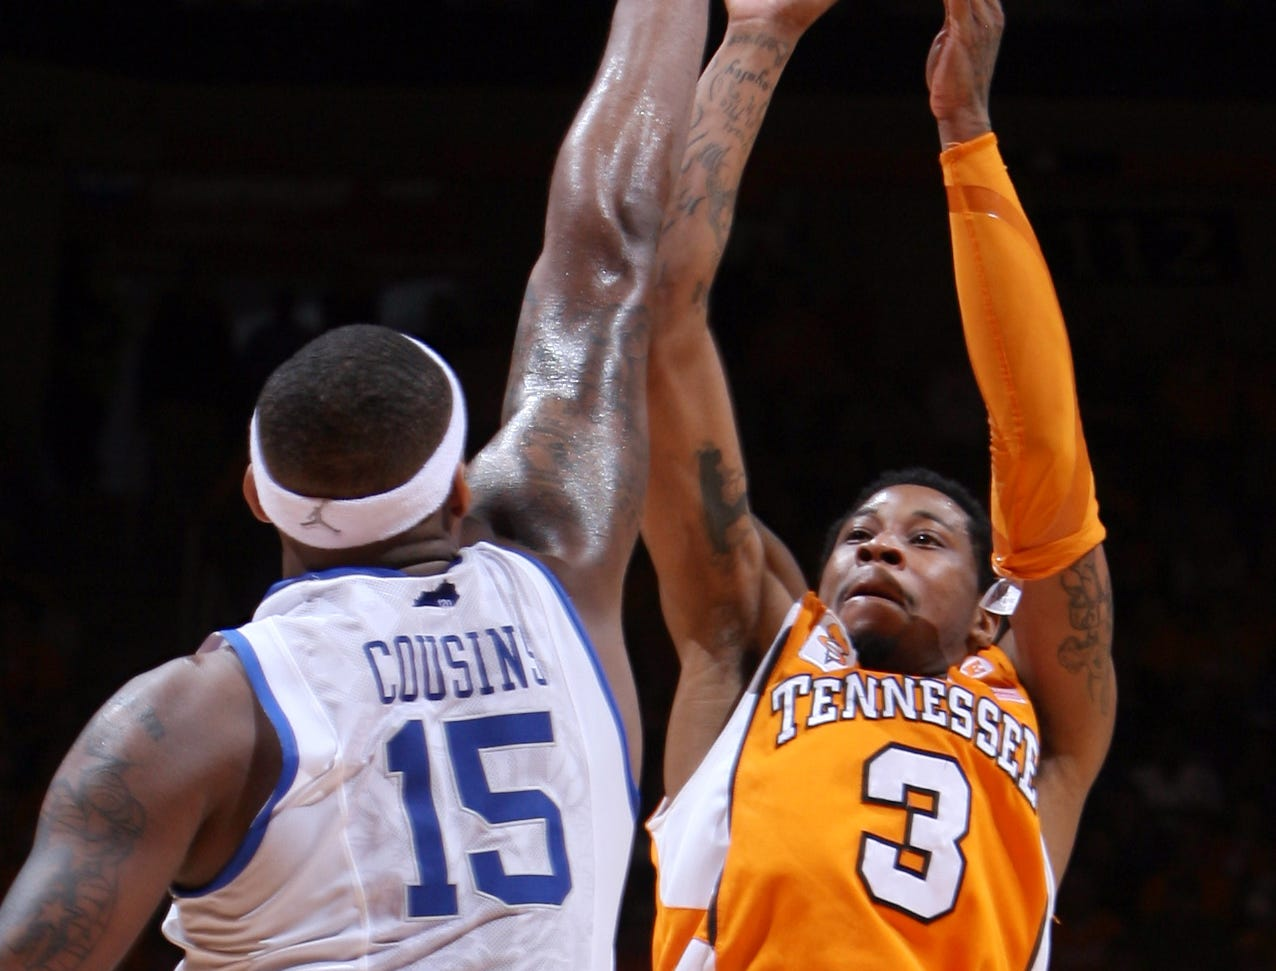 Tennessee guard Bobby Maze shoots over Kentucky forward DeMarcus Cousins at Thompson-Boling Arena Saturday, Feb. 27, 2010.  Maze scored 9 points for the Vols during the game.